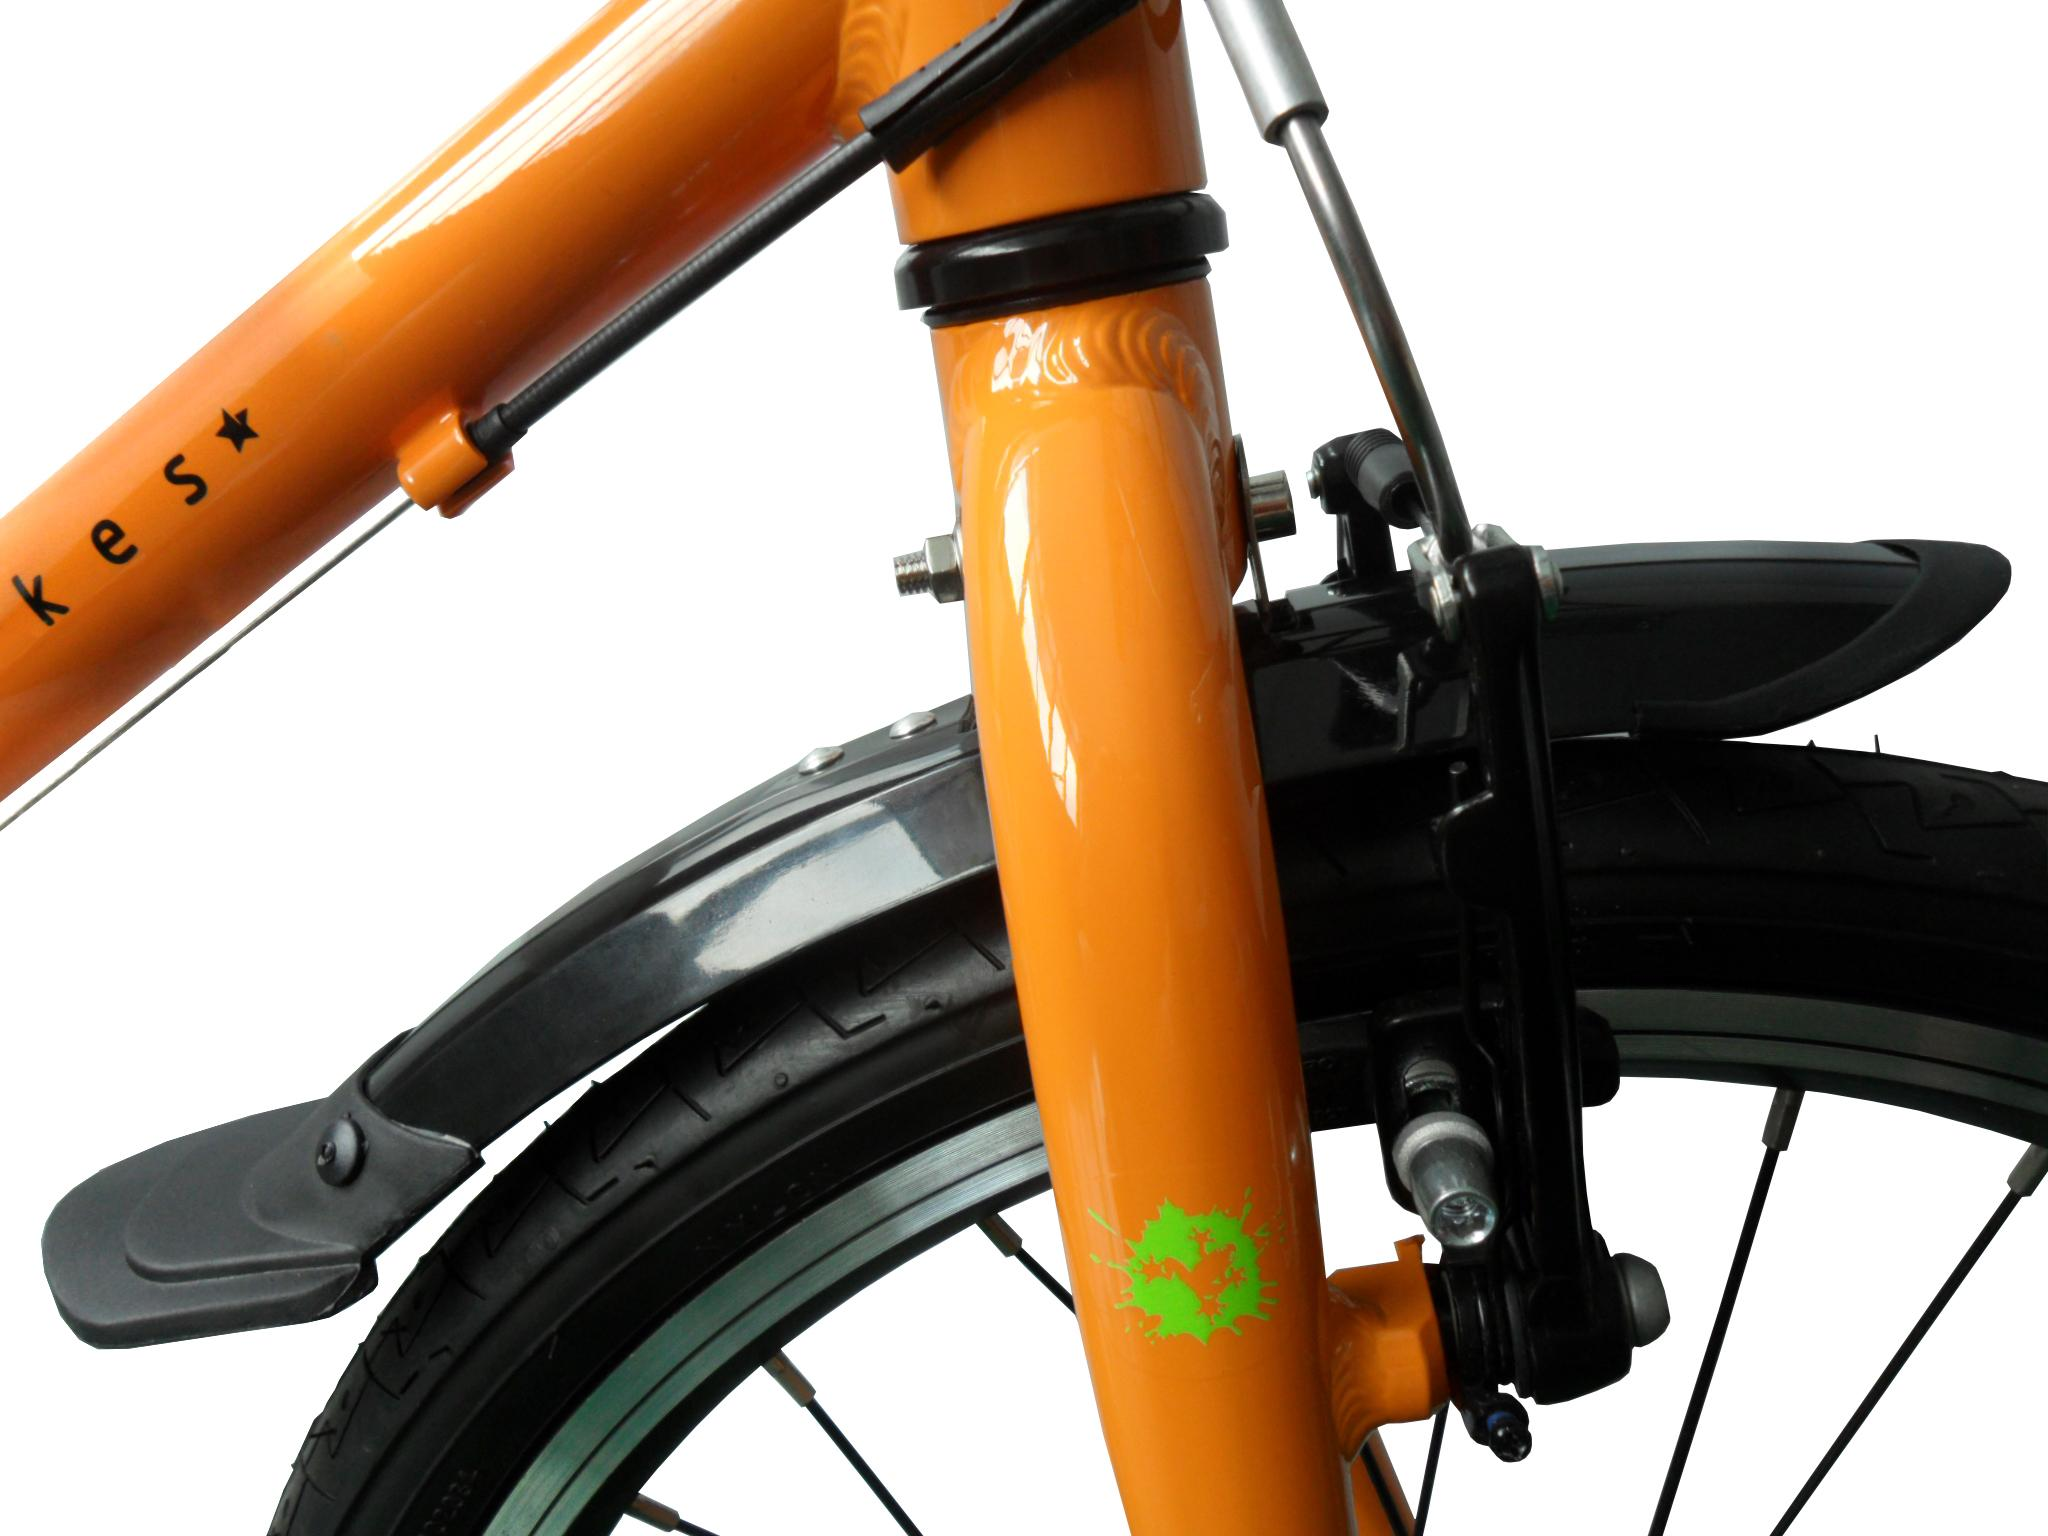 image of a child's bike with a mudguard on the front wheel